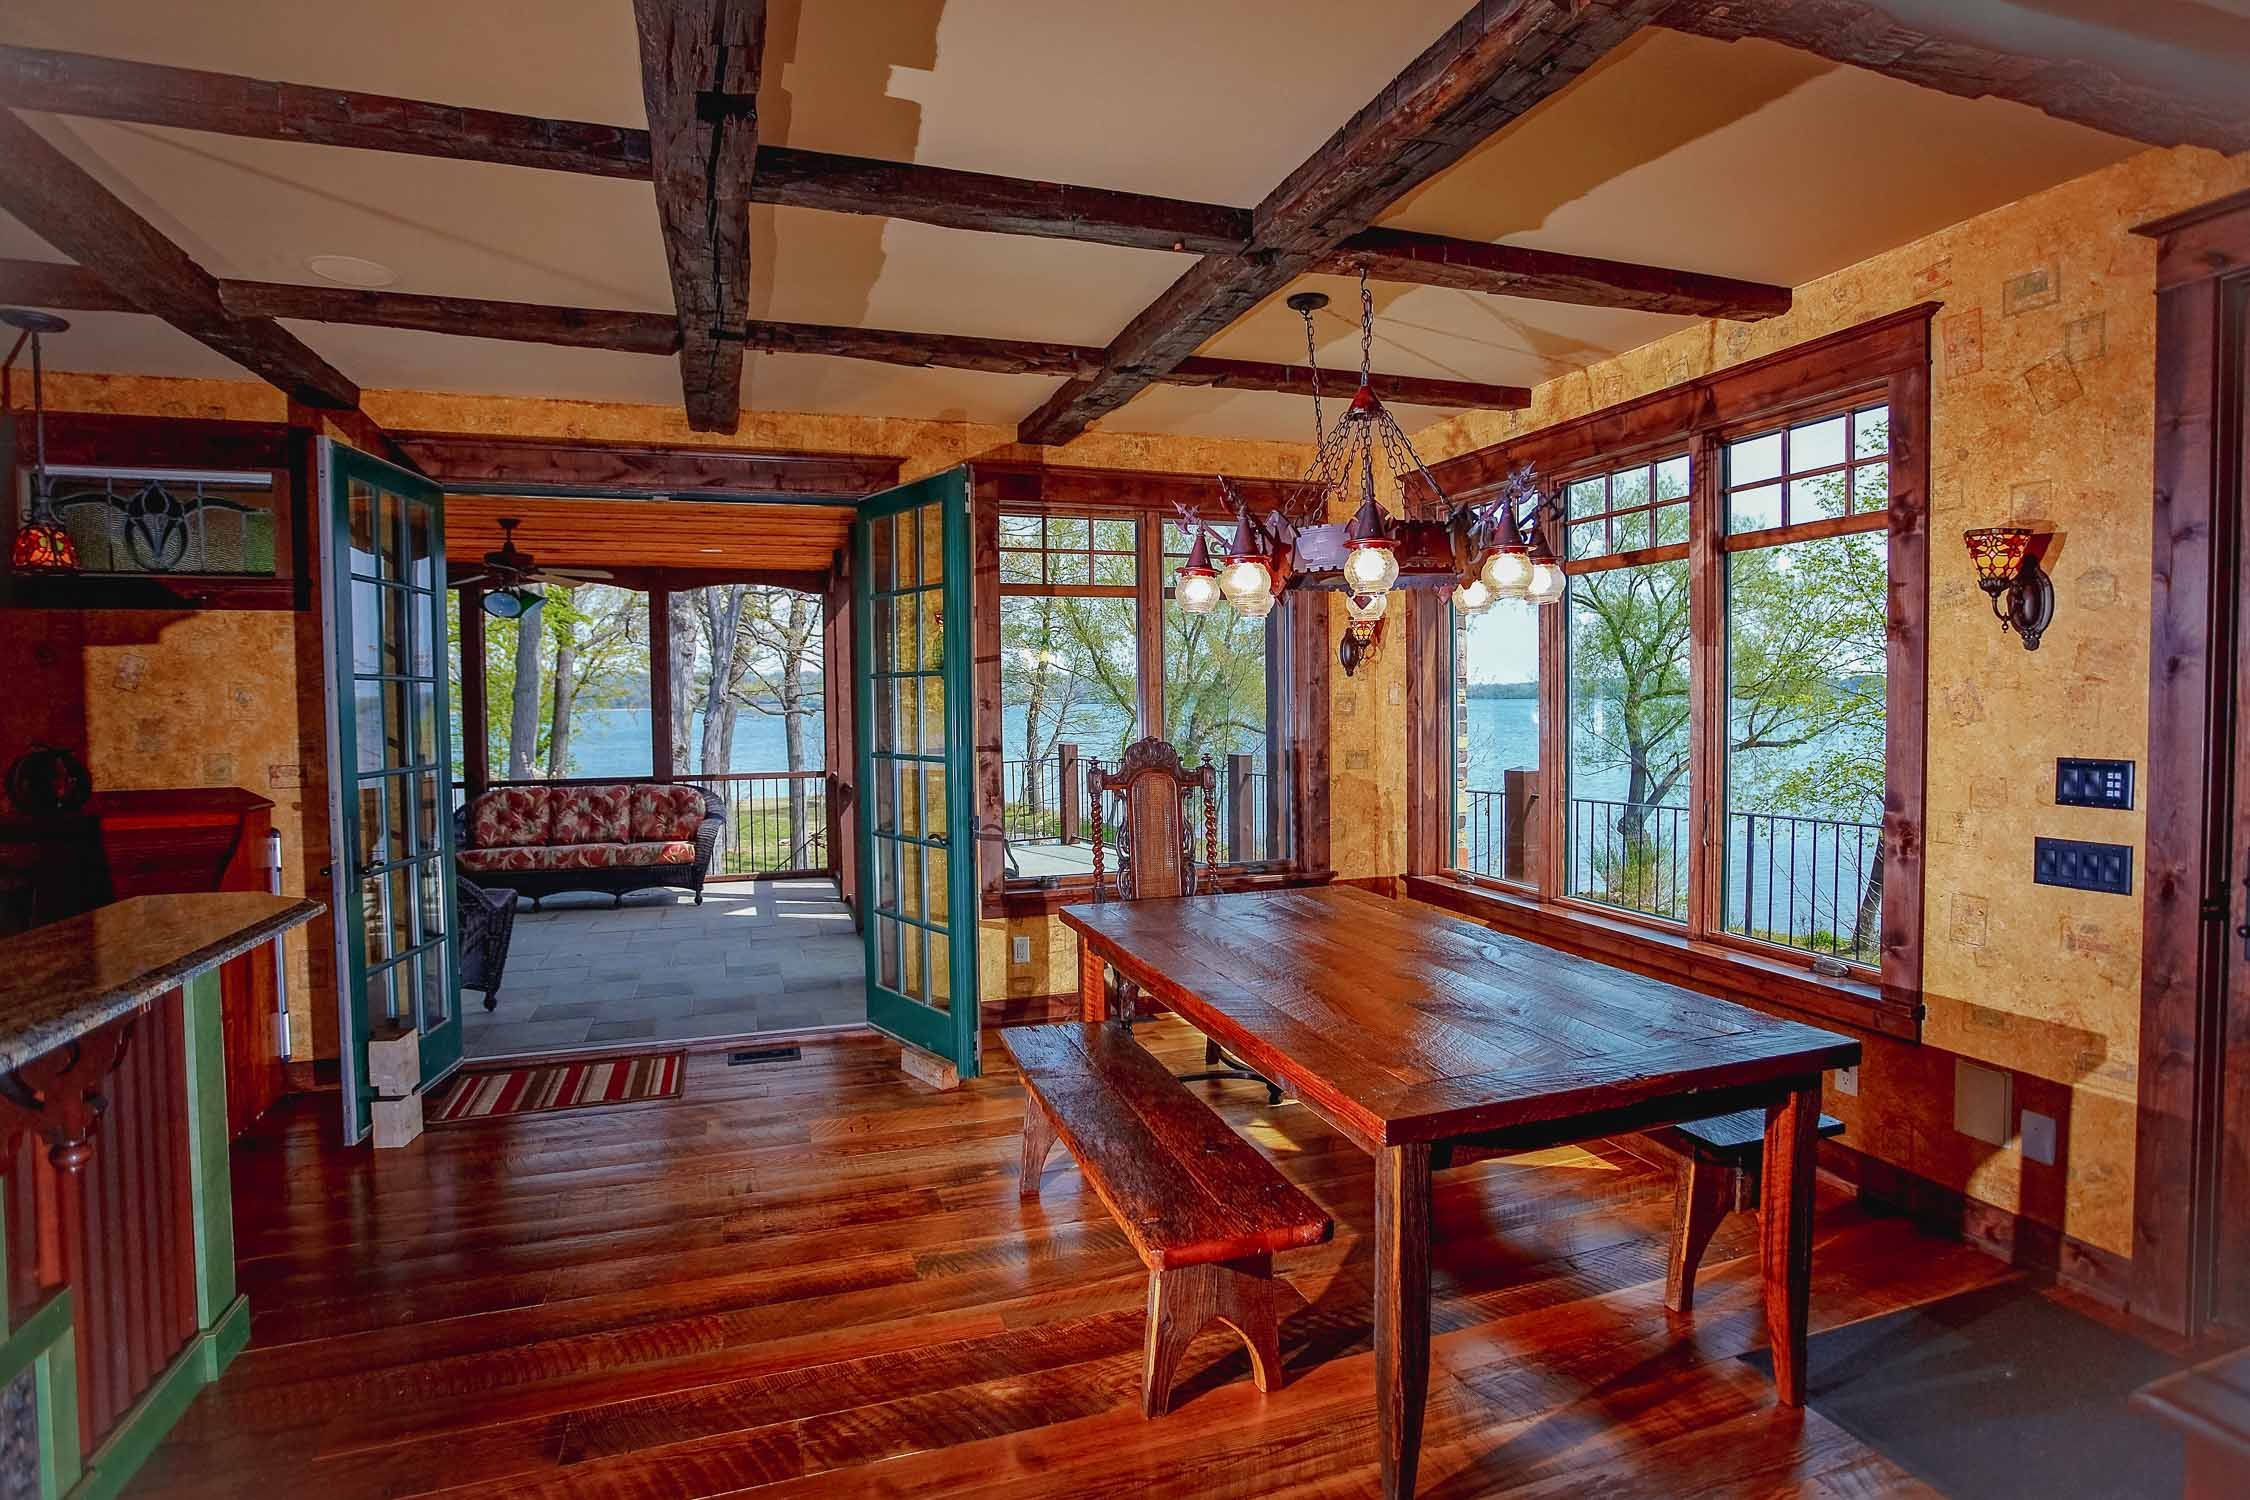 - This one-of-a-kind Storybook home includes rustic elements such as the beamwork and salvaged flooring, interspersed with large windows and a modern open floor plan.